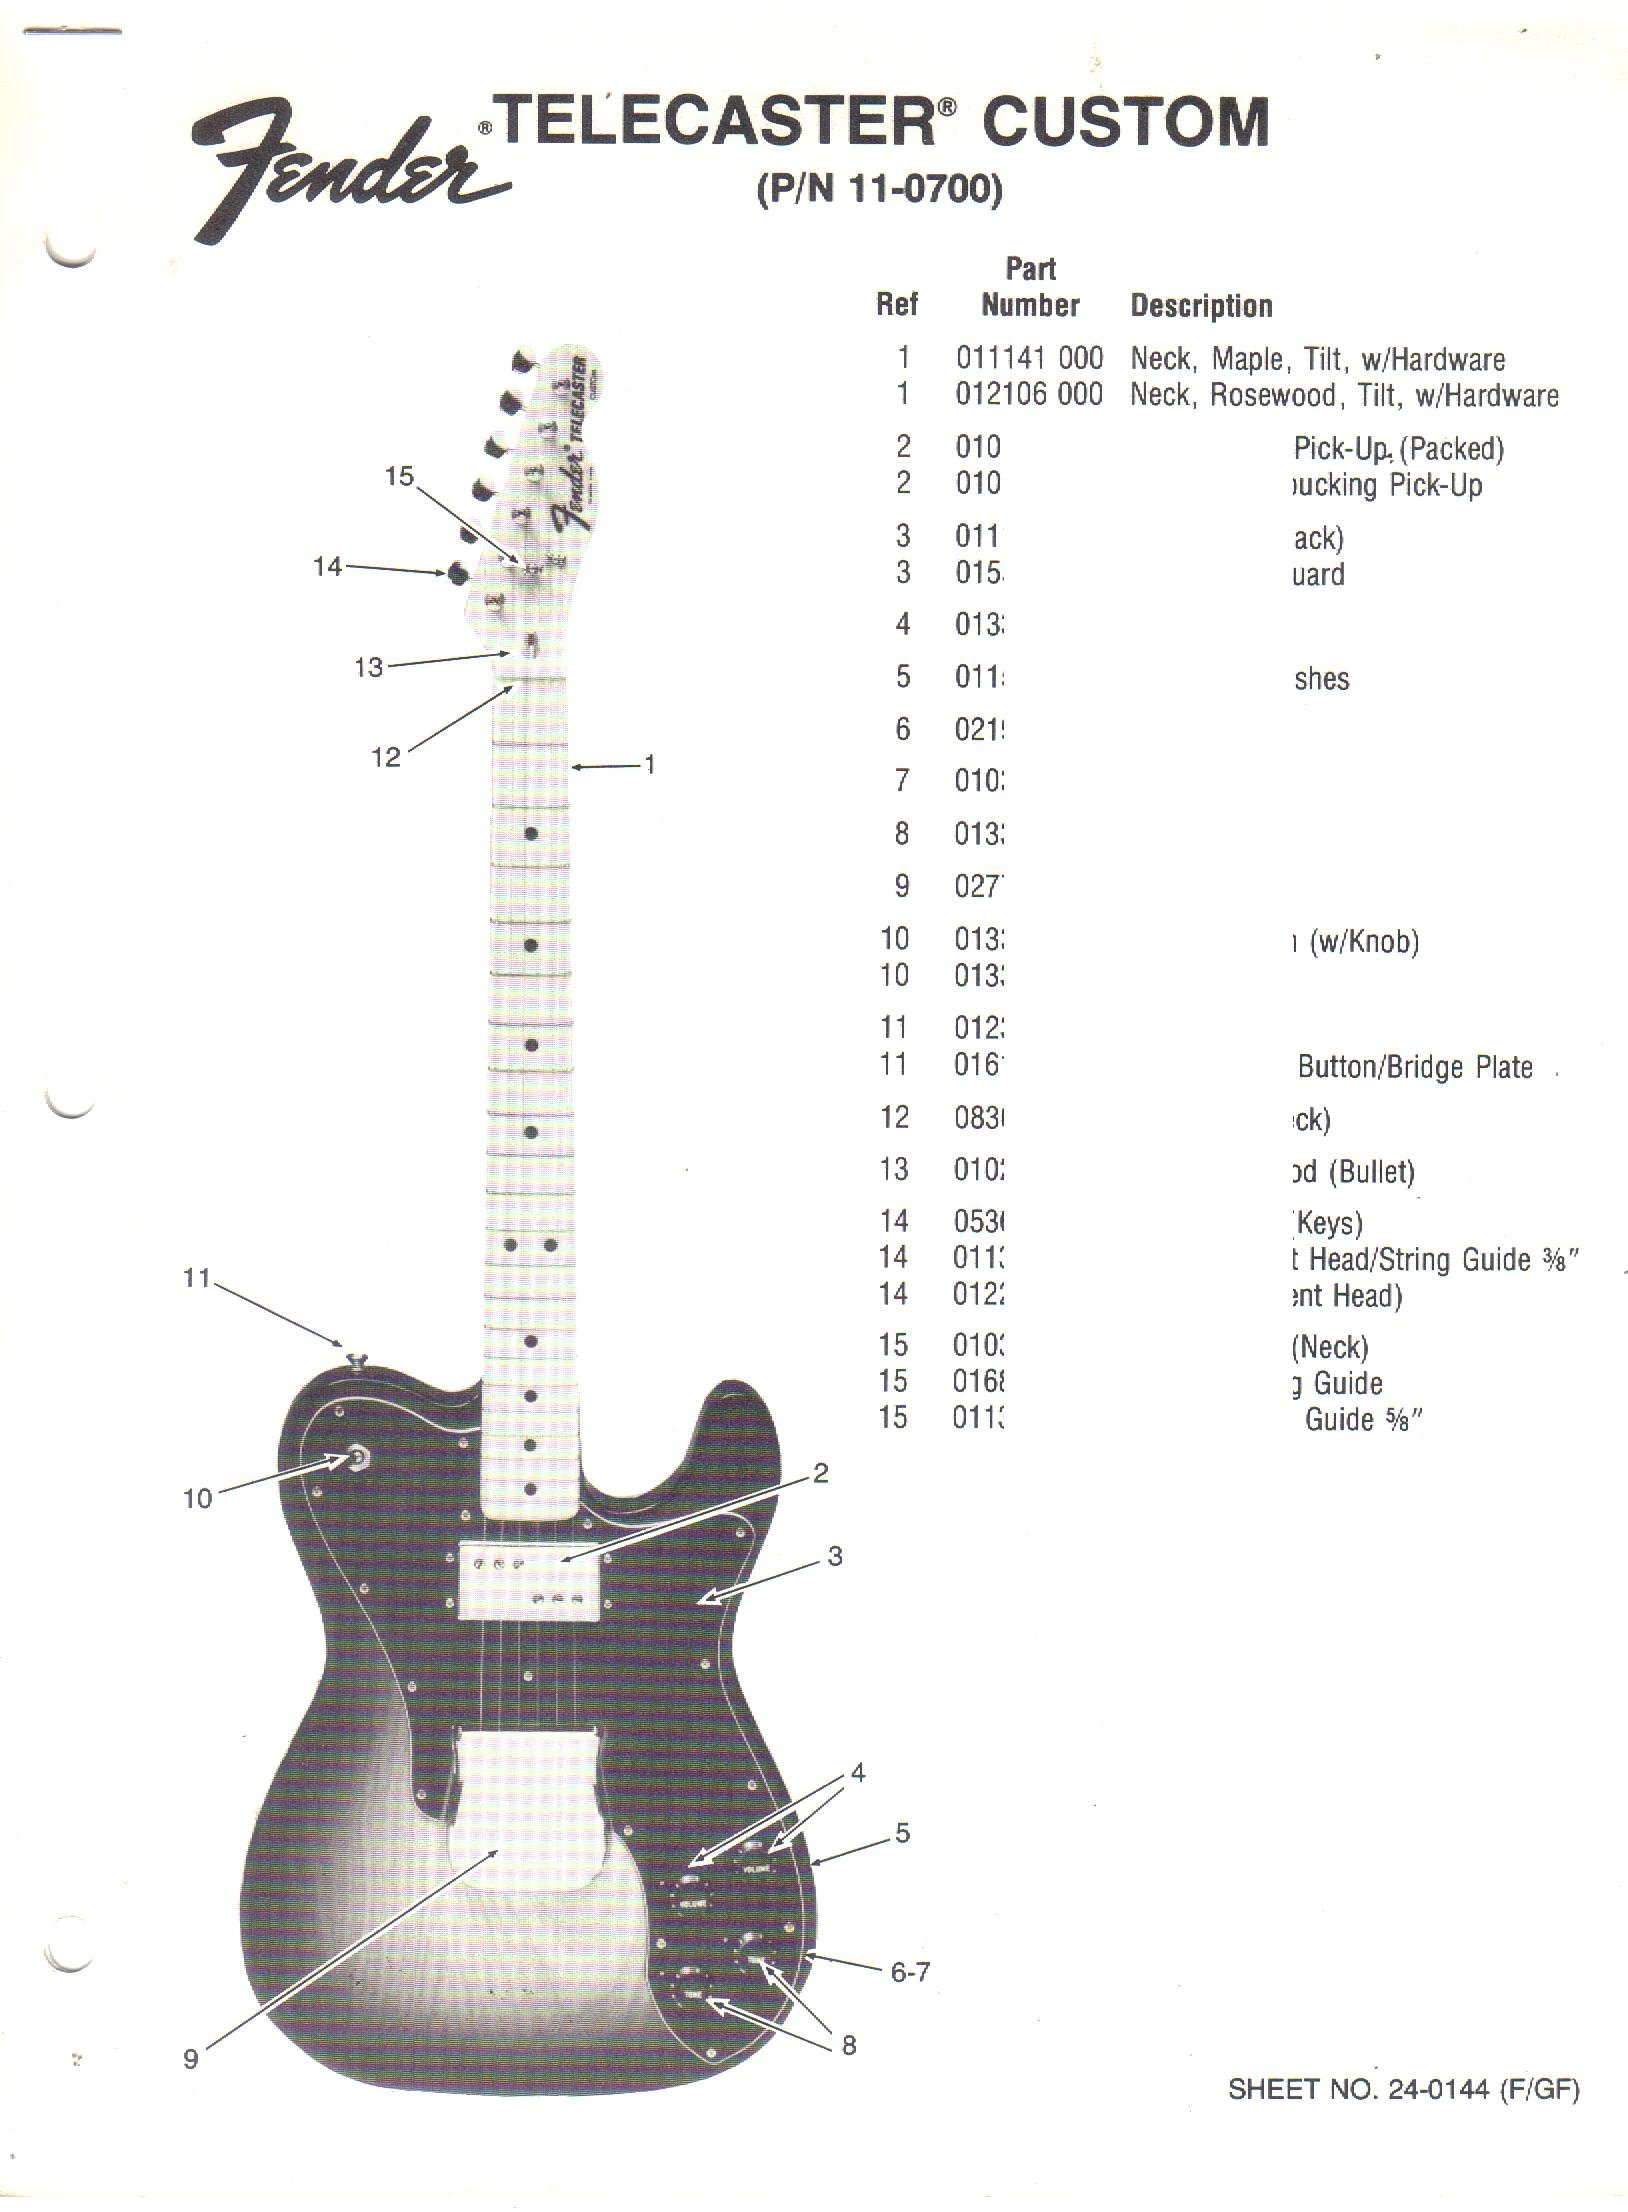 Fantastic Fender Telecaster Electric Guitar Parts List Fender Electronics Wiring Digital Resources Timewpwclawcorpcom